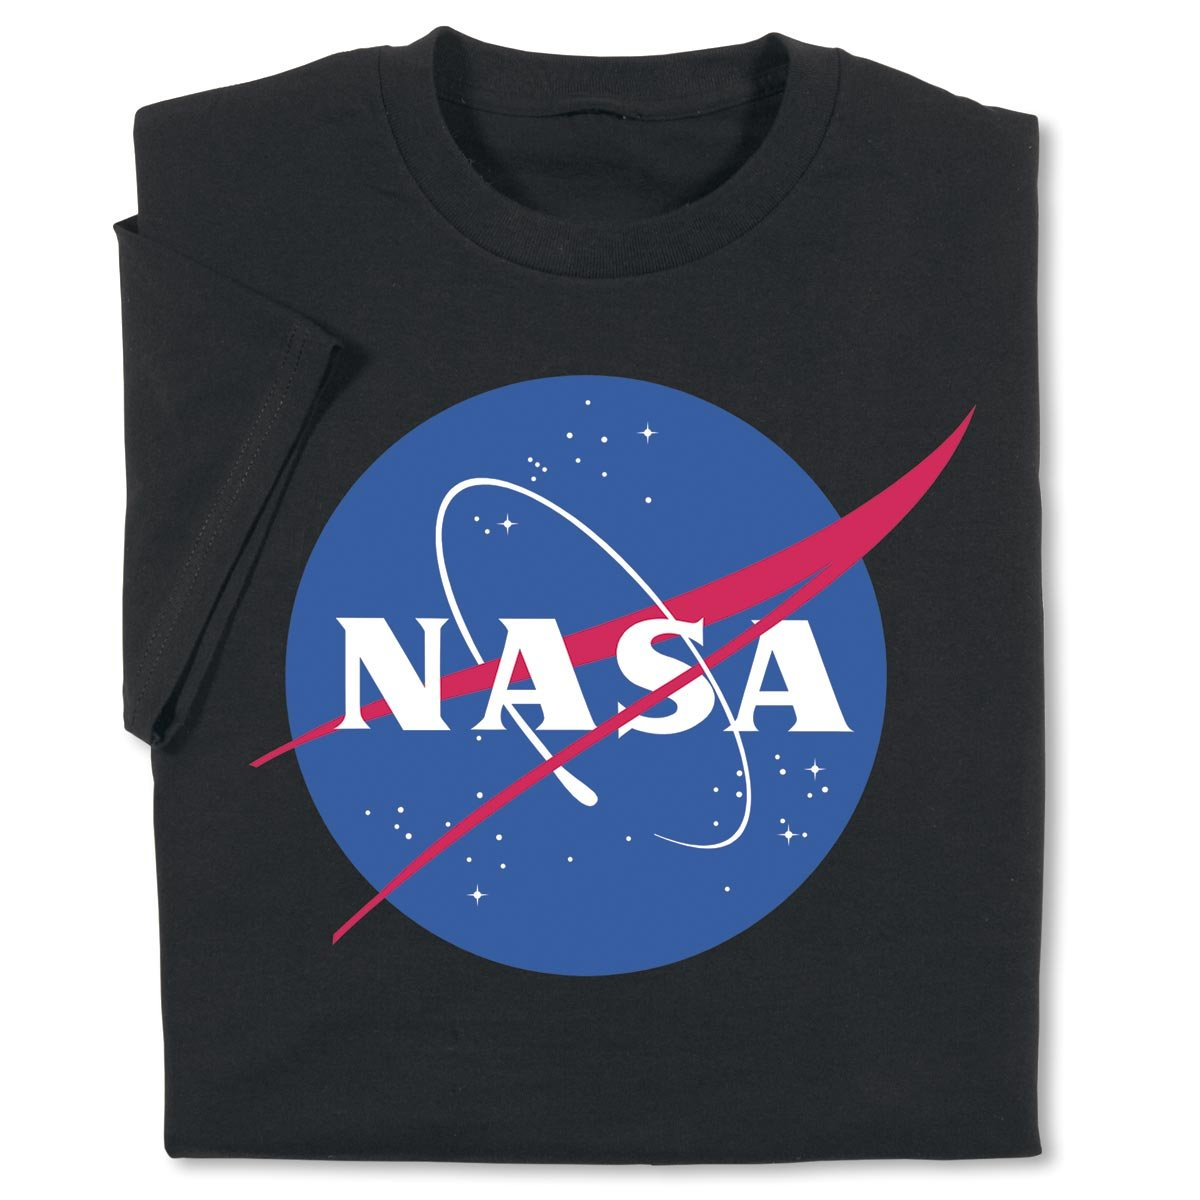 507ff0d8e947 Amazon.com: ComputerGear NASA T Shirt Space Science Engineer Geek Nerd  Officially Licensed: Clothing